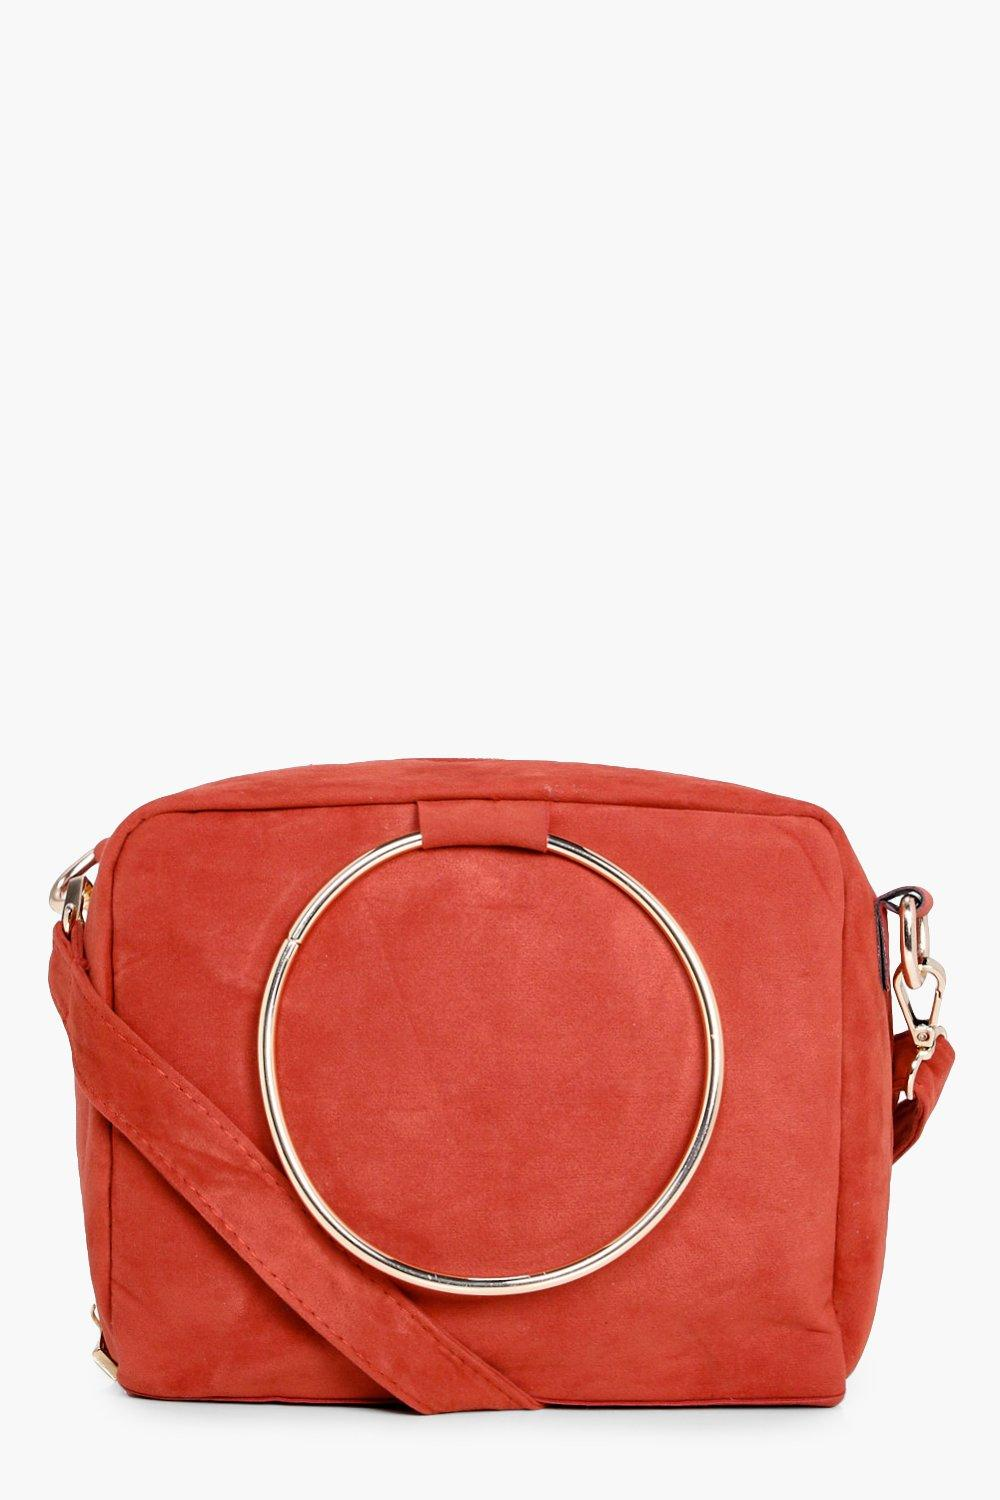 Loop Ring Detail Cross Body Bag - rust - Frankie L